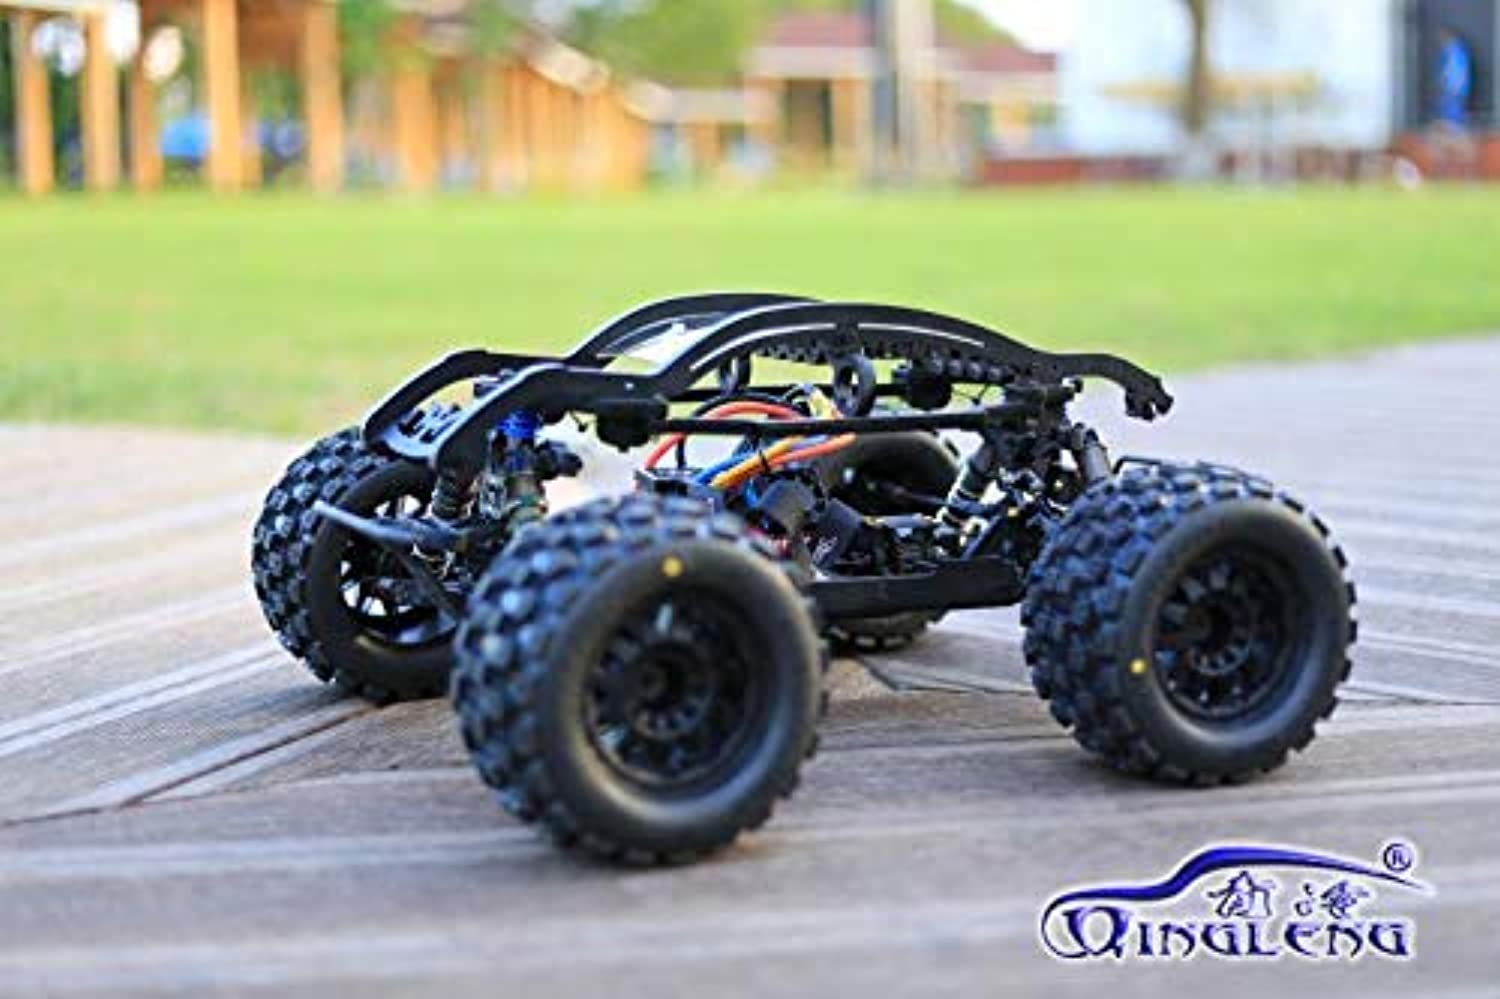 Tamiya 1 10 electric RC Car Series No.418 1 10 RCC boomerang 4WD (2008) 58418